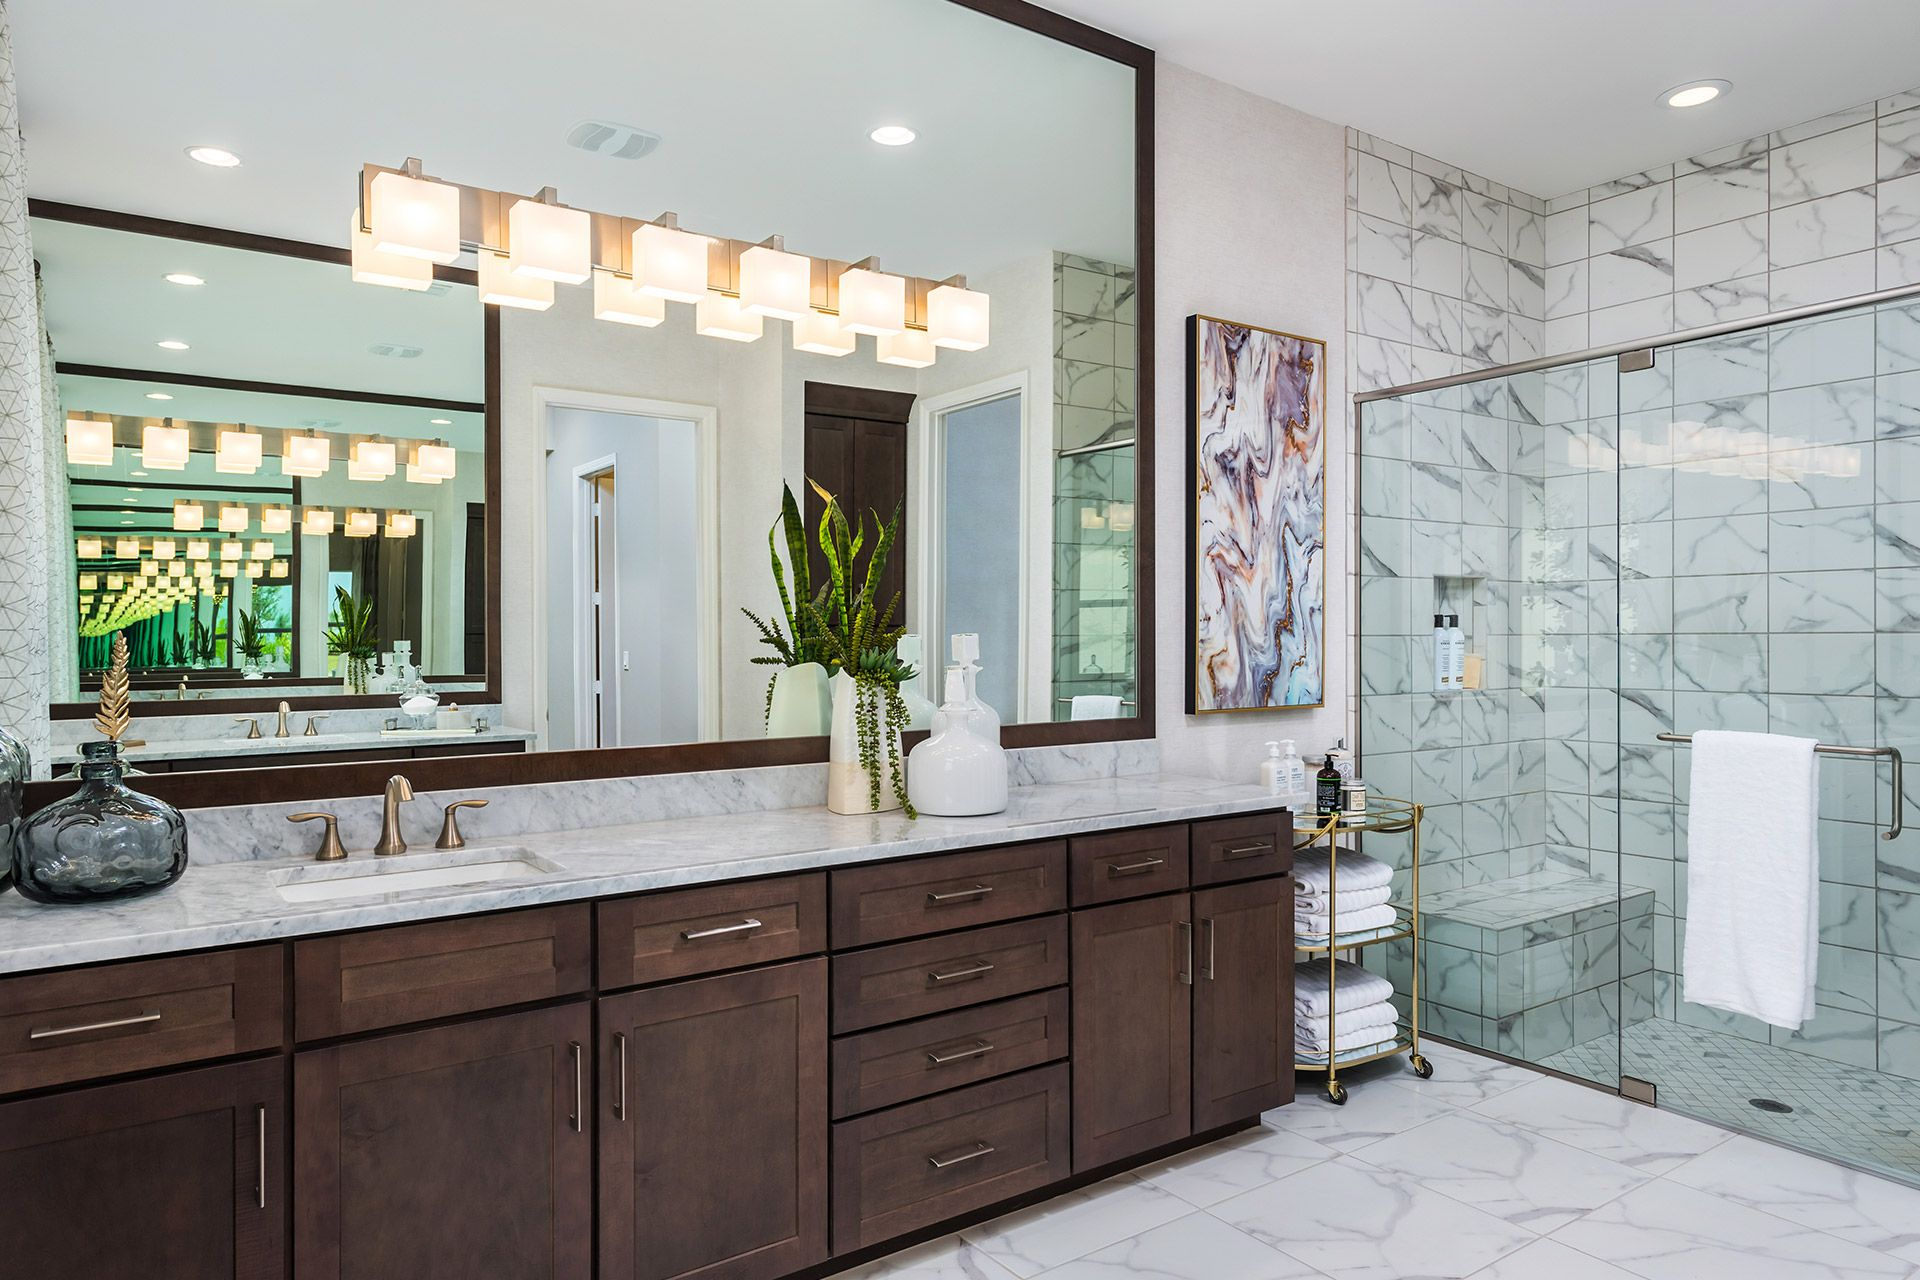 Bathroom featured in the Julia By GL Homes in Martin-St. Lucie-Okeechobee Counties, FL